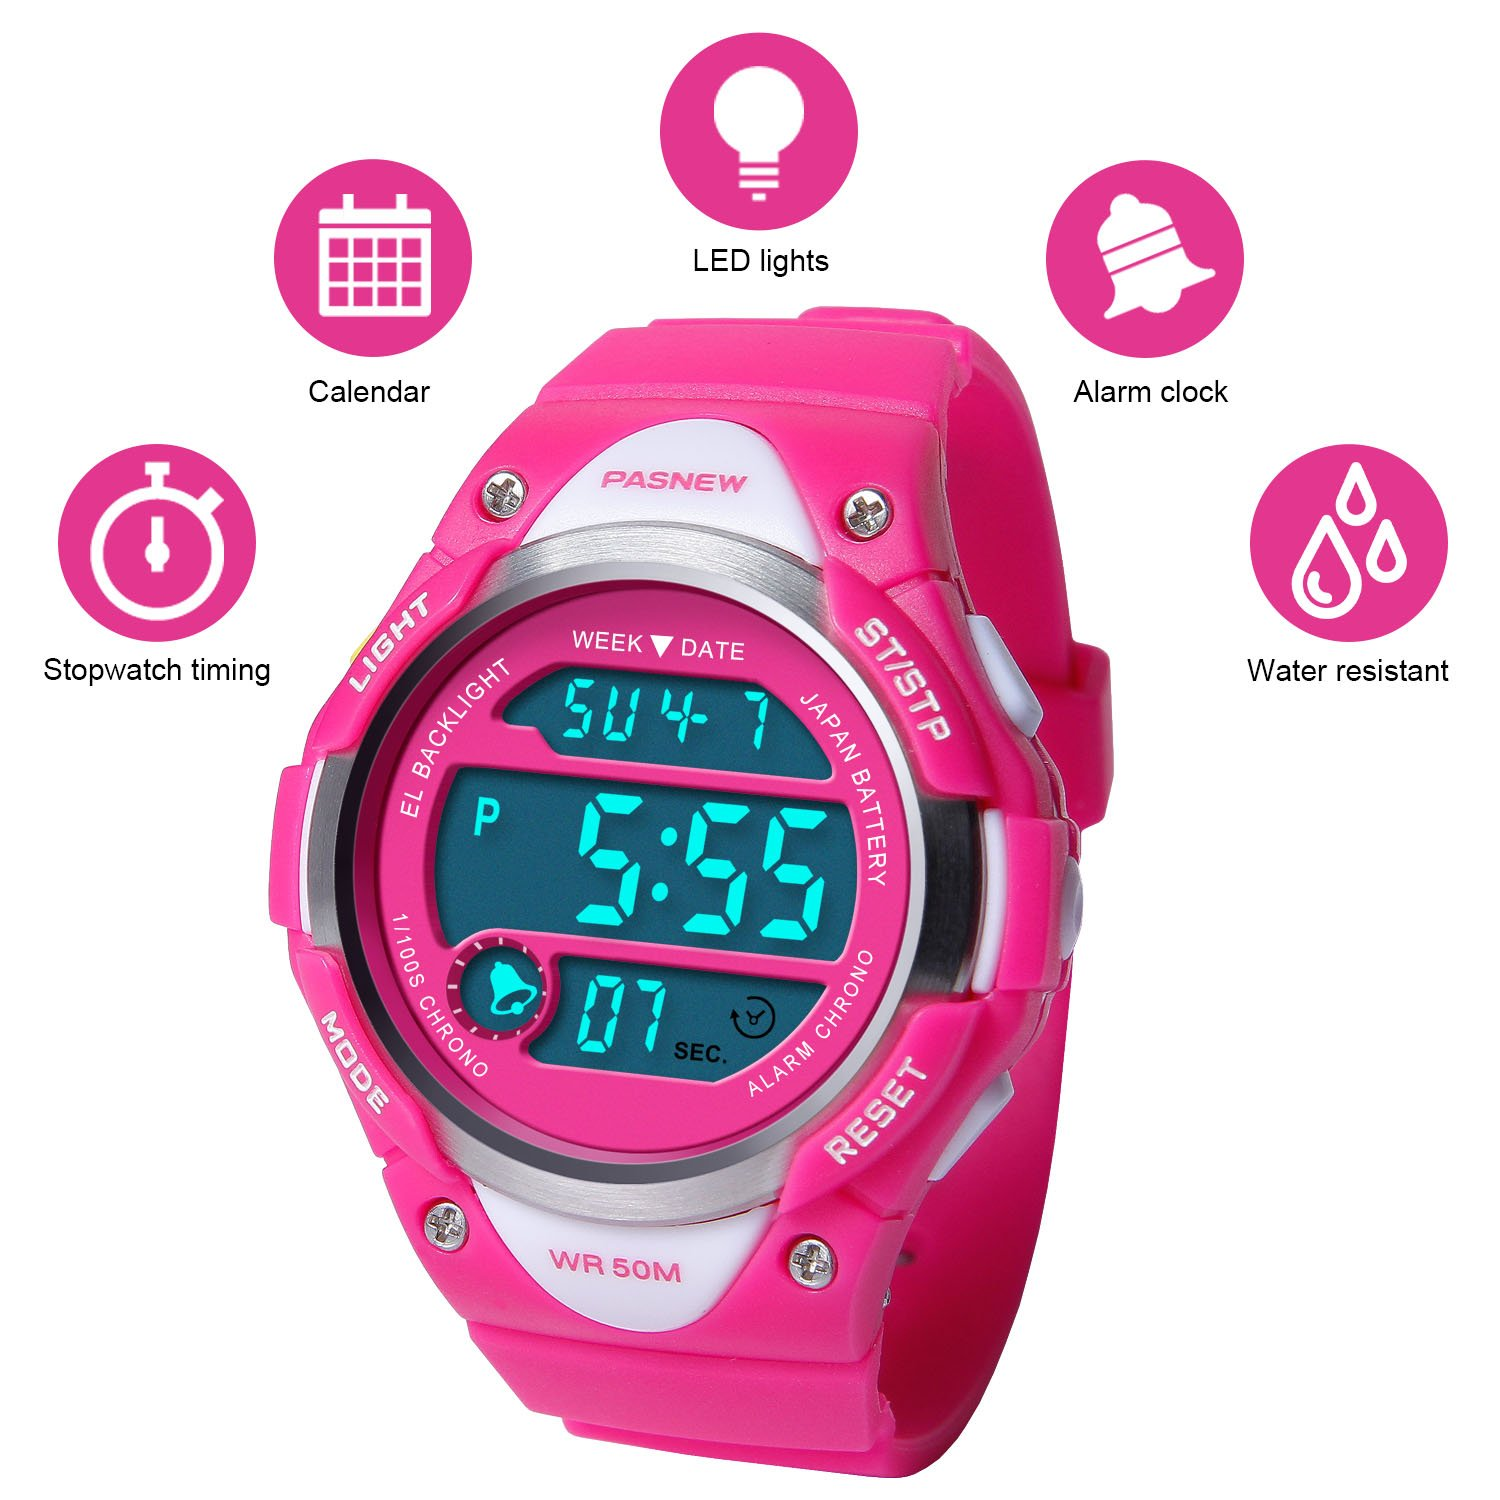 HIwatch Kids Sport Watch Water-resistant Swimming LED Digital Watch with Alarm Back Light Stopwatch for Boys Girls 7+ Years Old Pink, for Kids Children